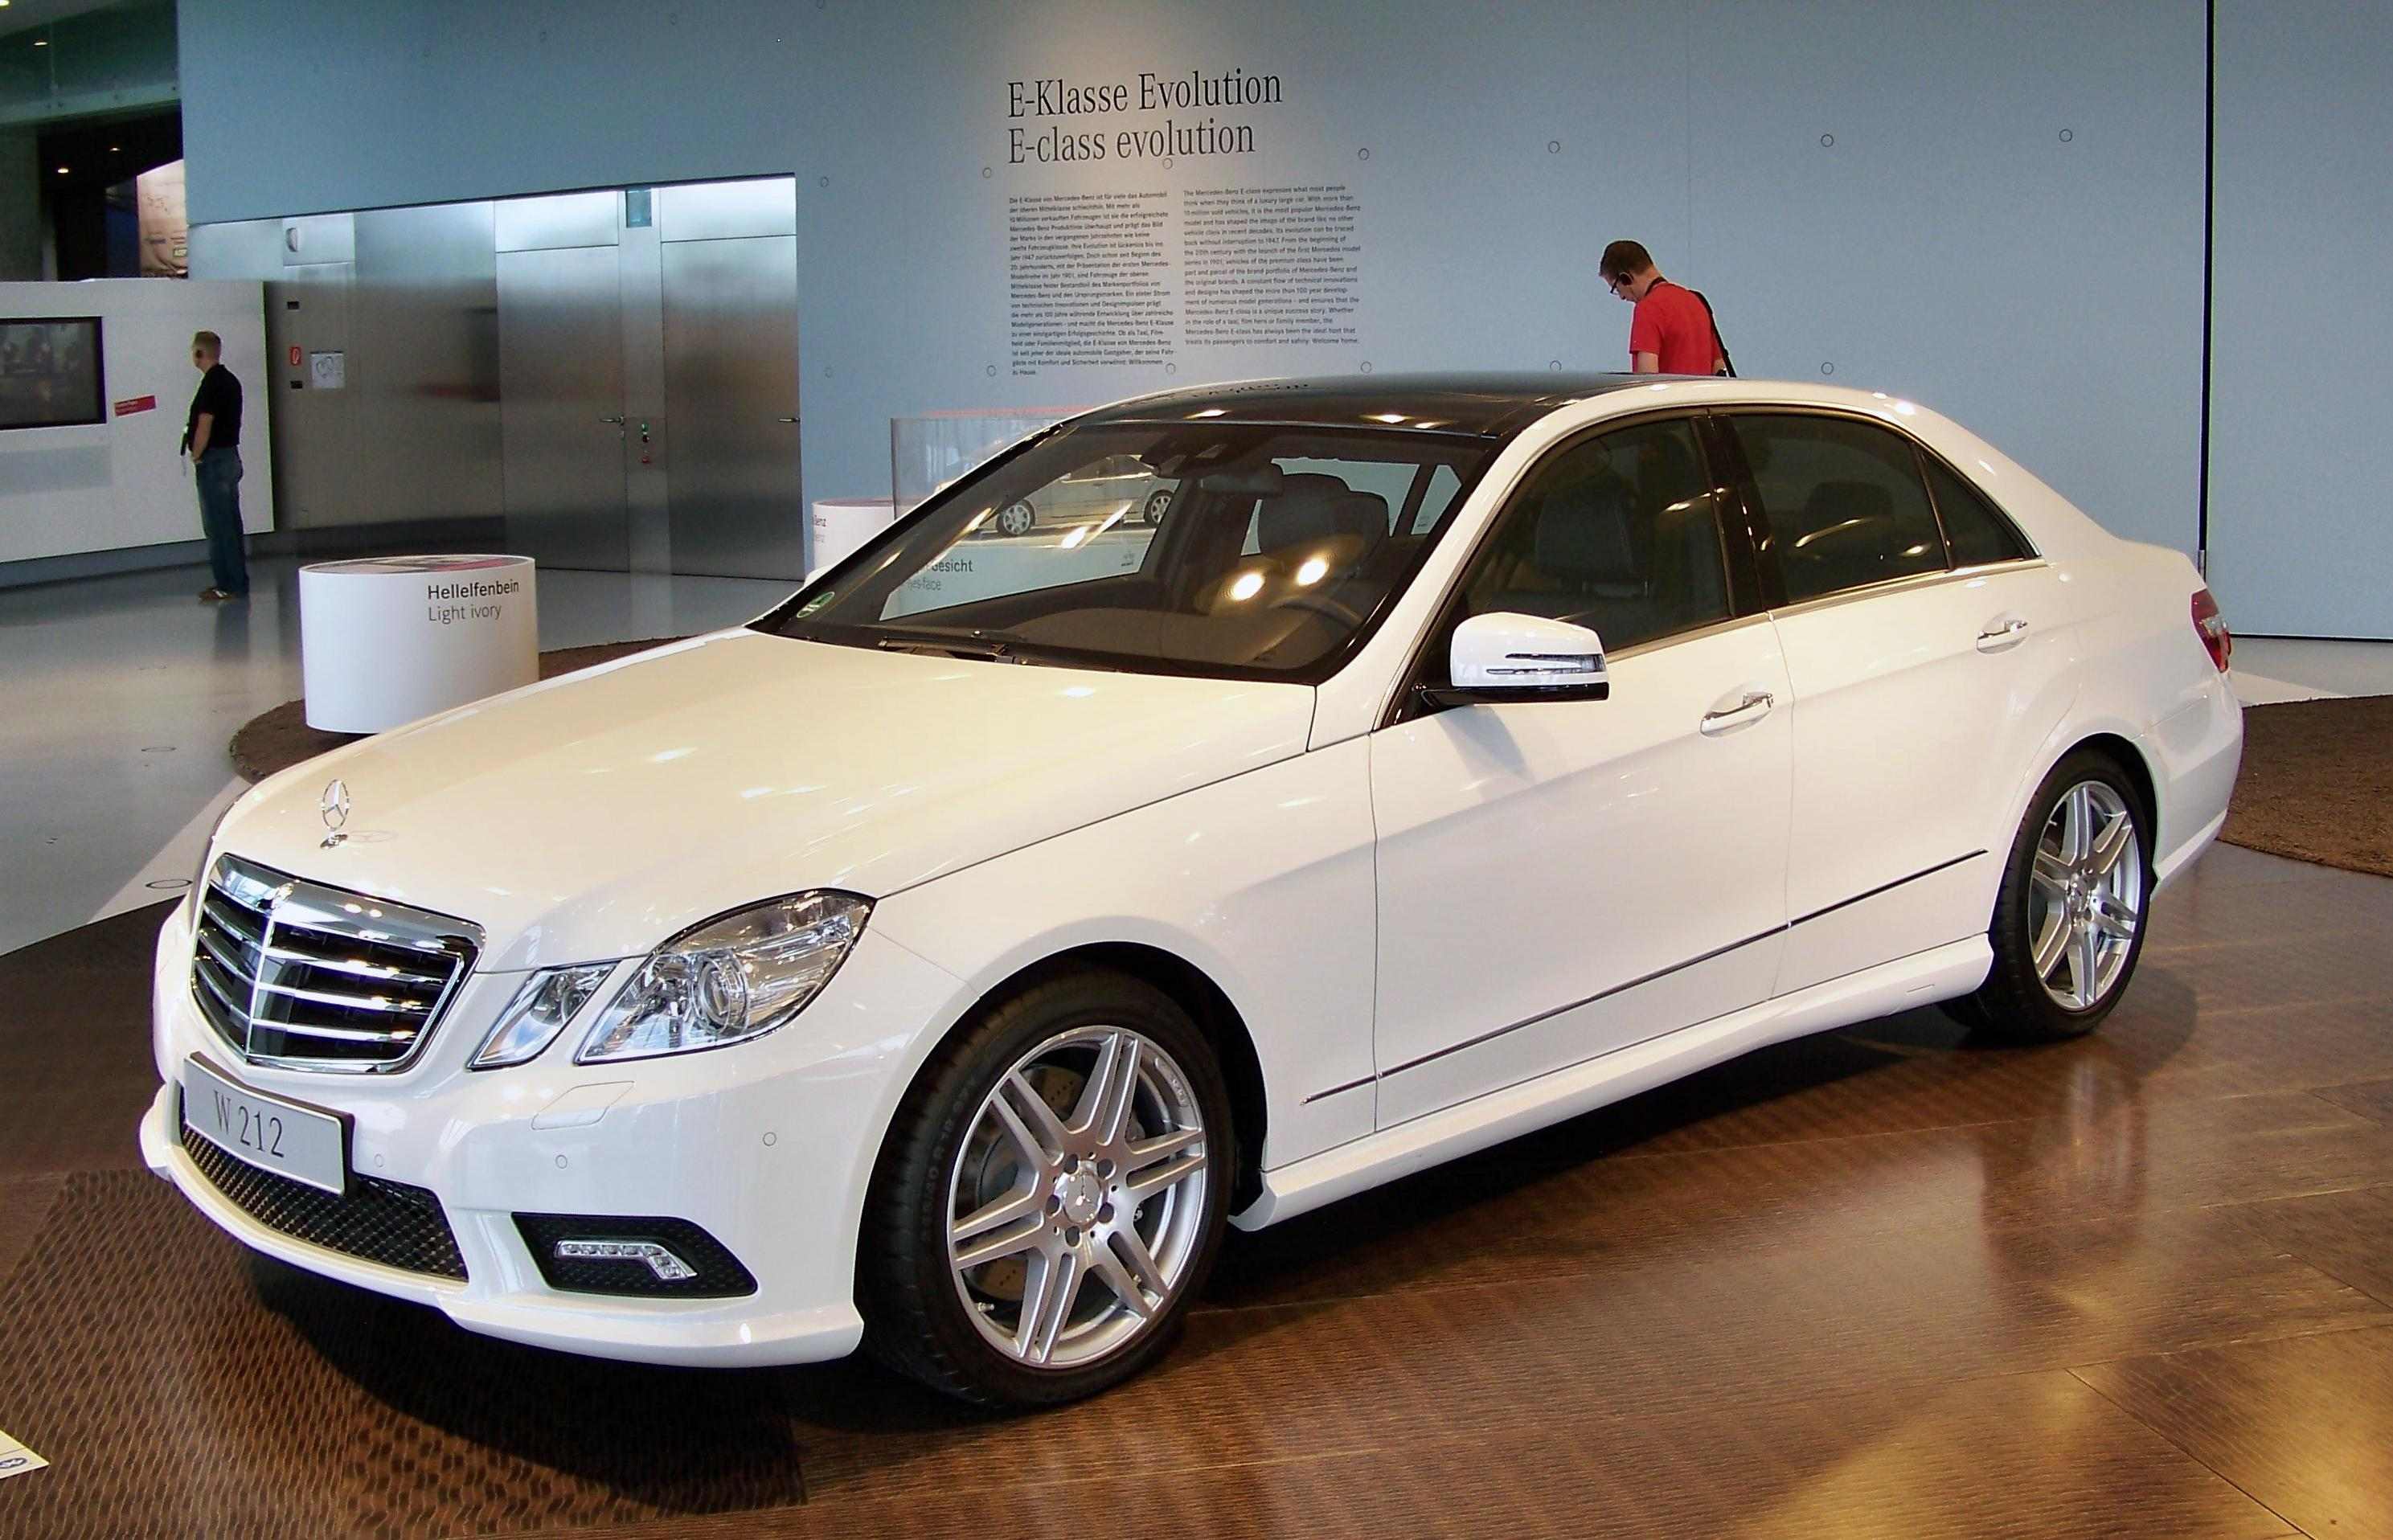 file white w212 e 500 amg mercedes wikipedia. Black Bedroom Furniture Sets. Home Design Ideas